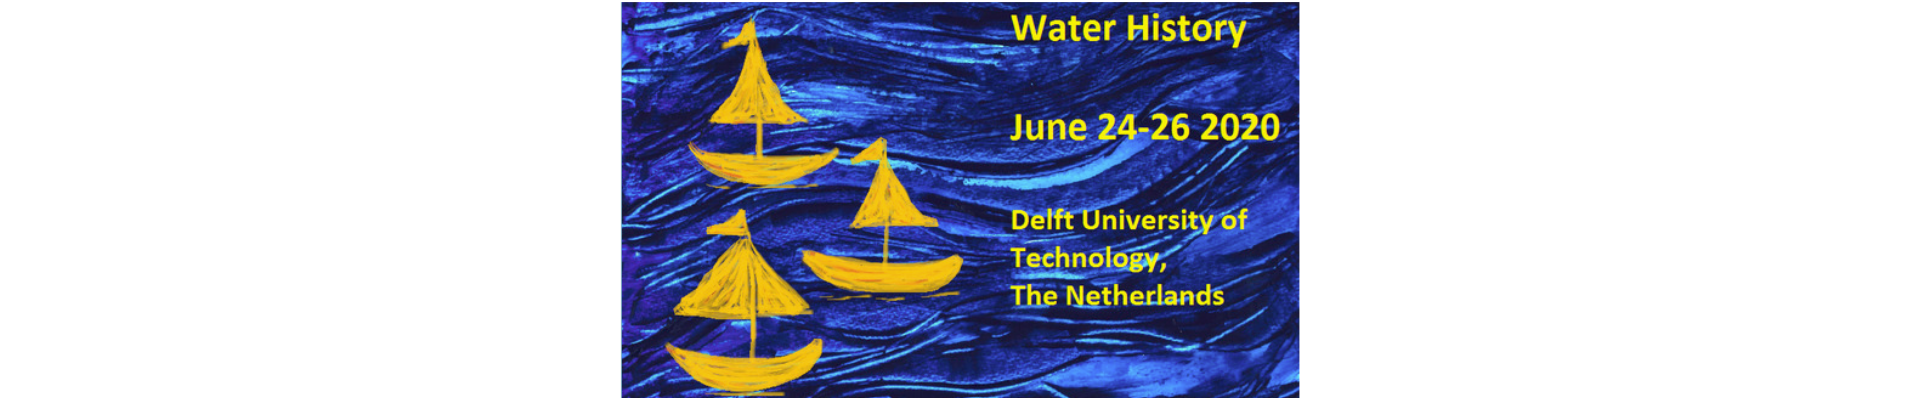 INTERNATIONAL WATER HISTORY CONFERENCE